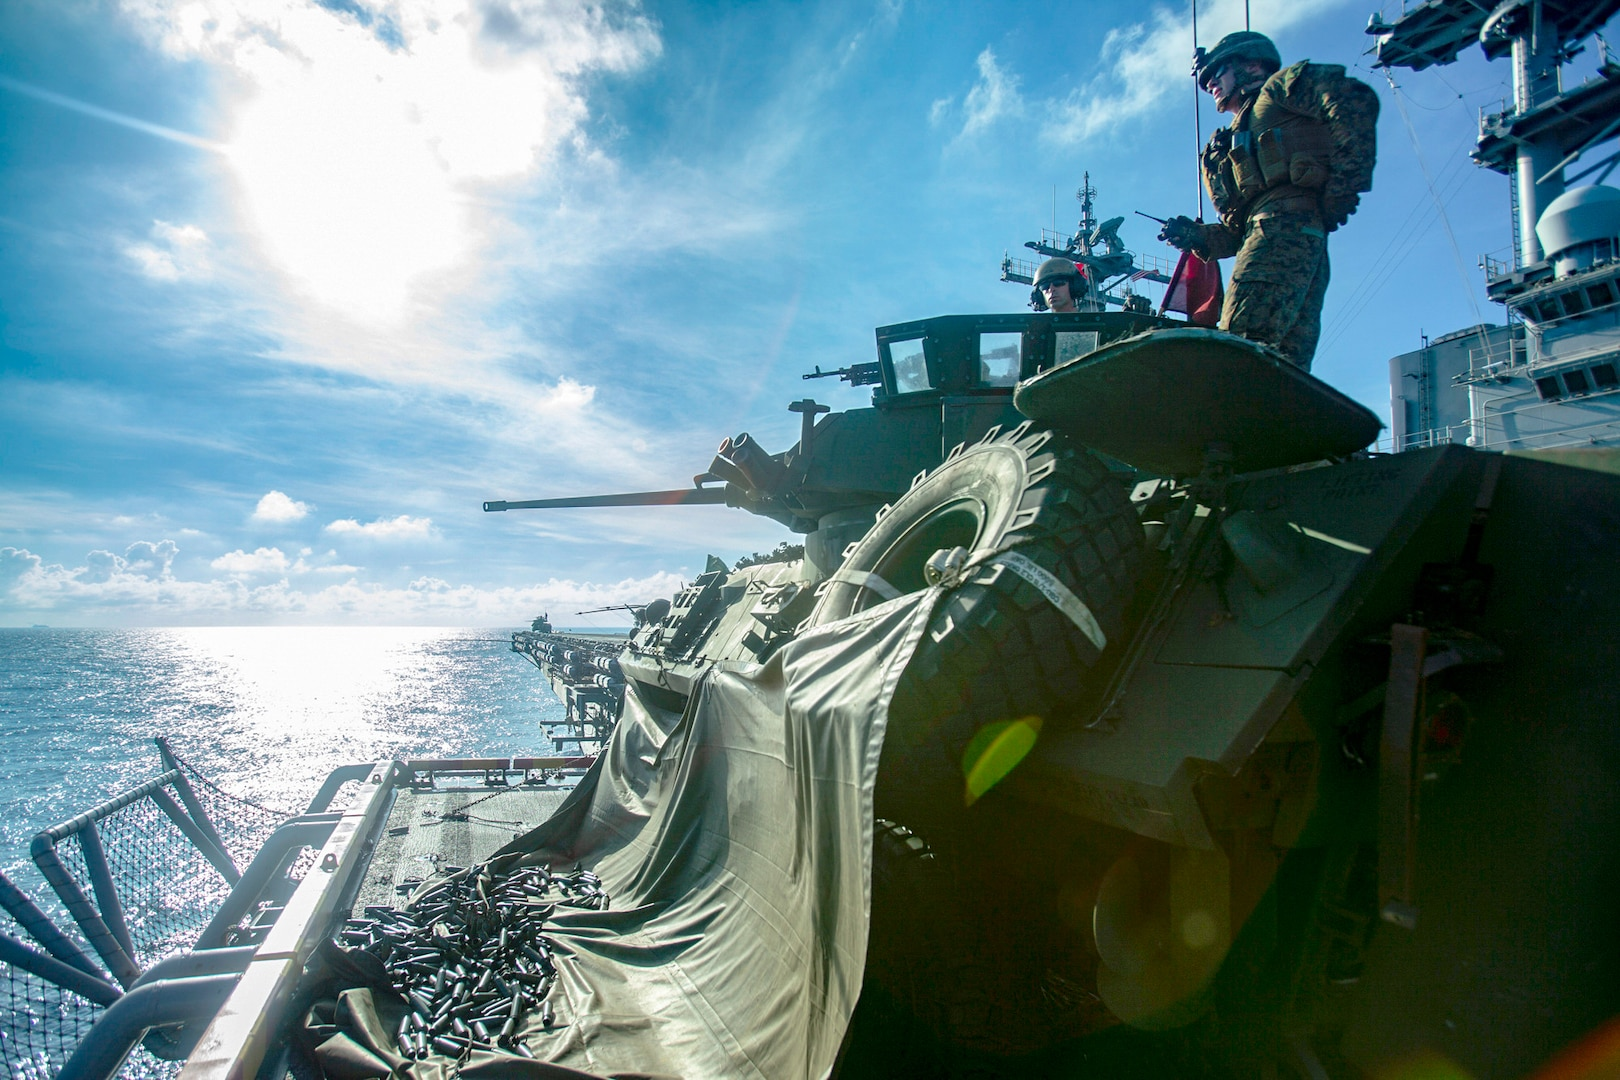 Wasp ARG, 31st MEU conduct DATF drill in the South China Sea